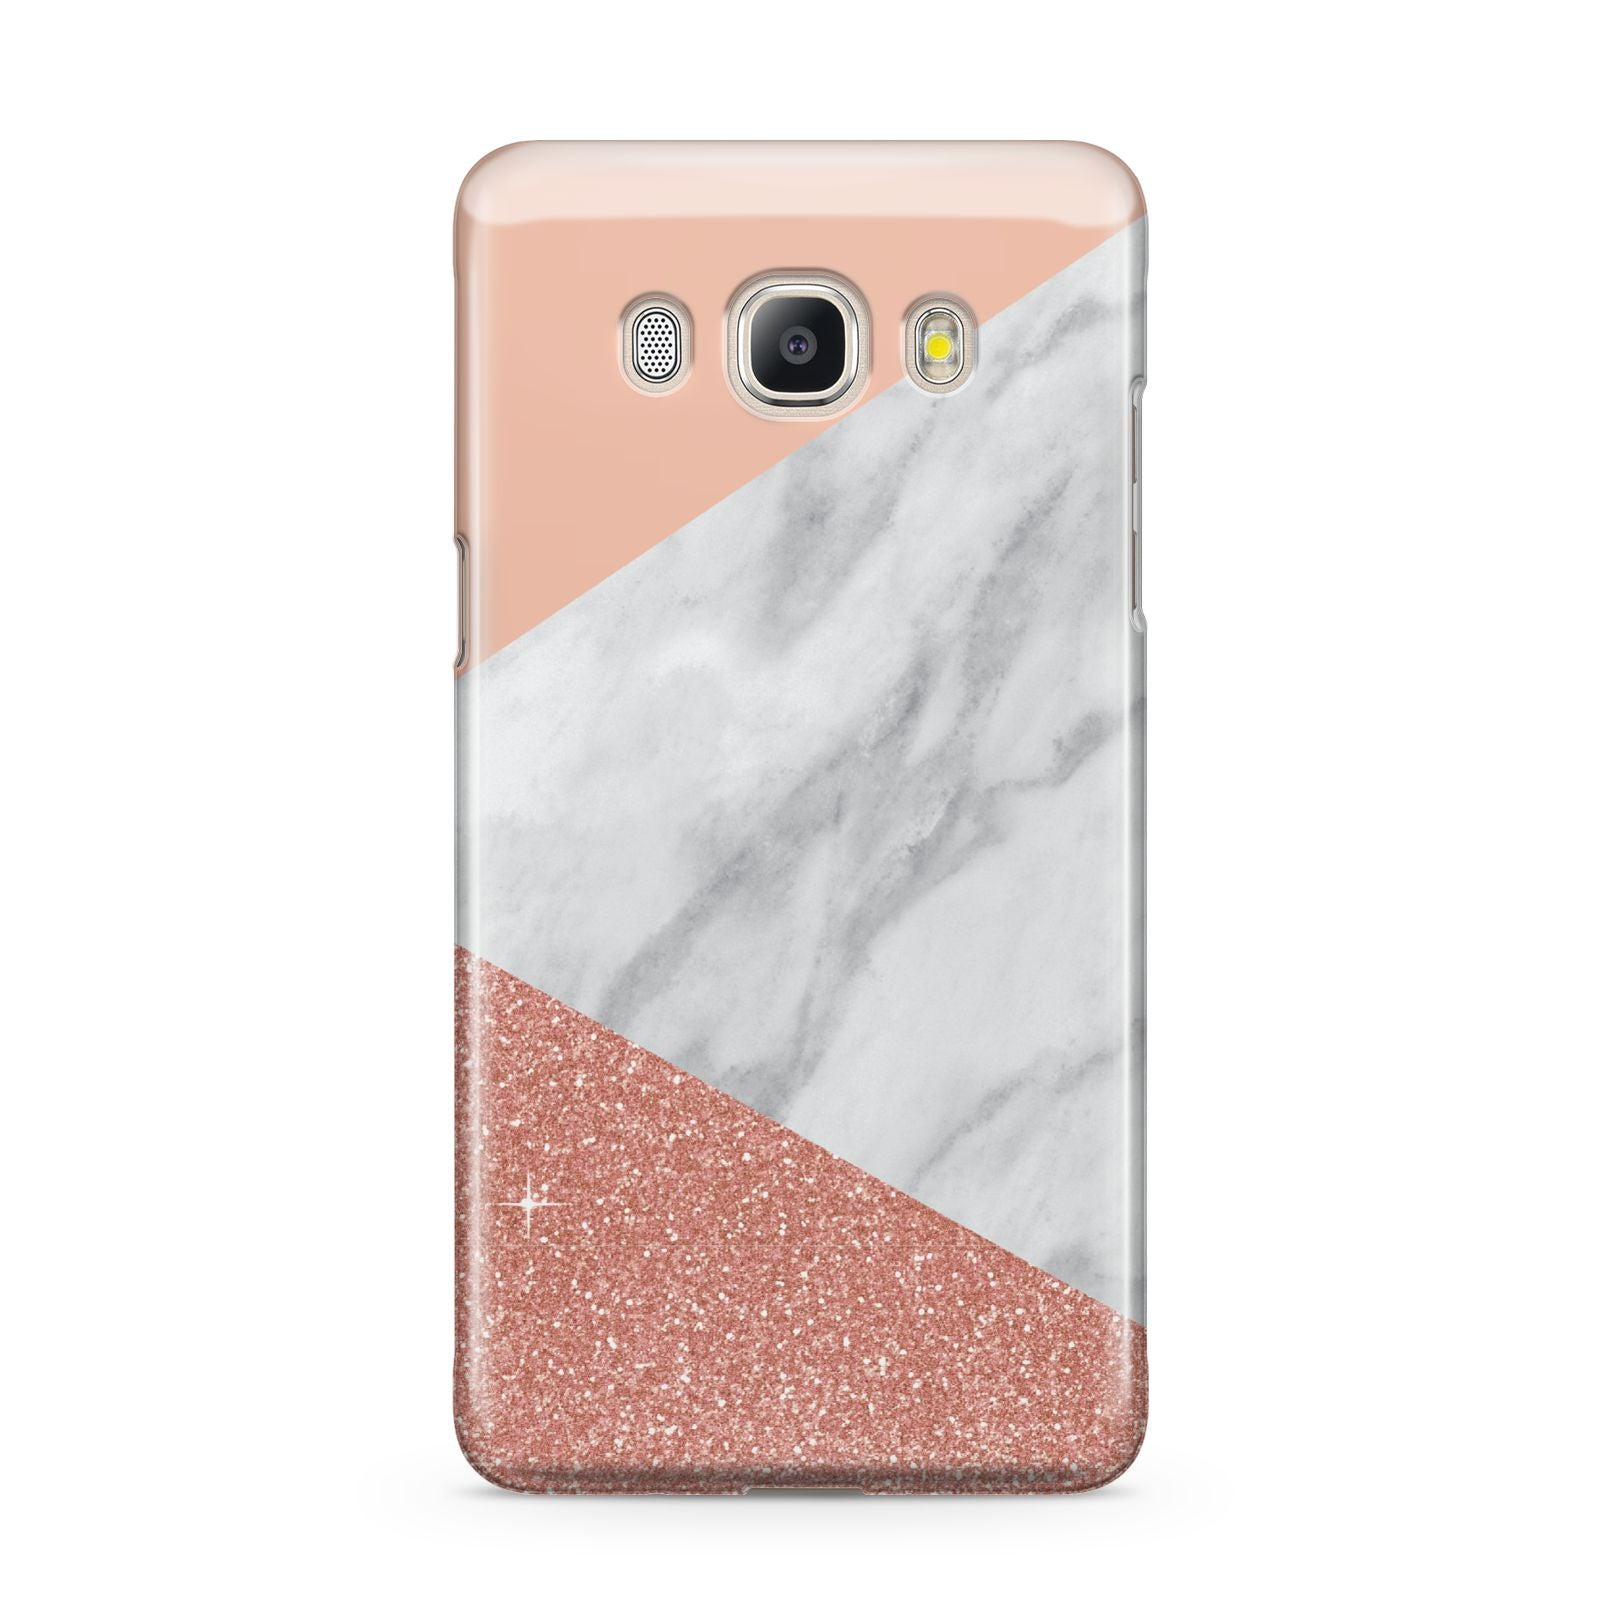 Marble White Rose Gold Samsung Galaxy J5 2016 Case